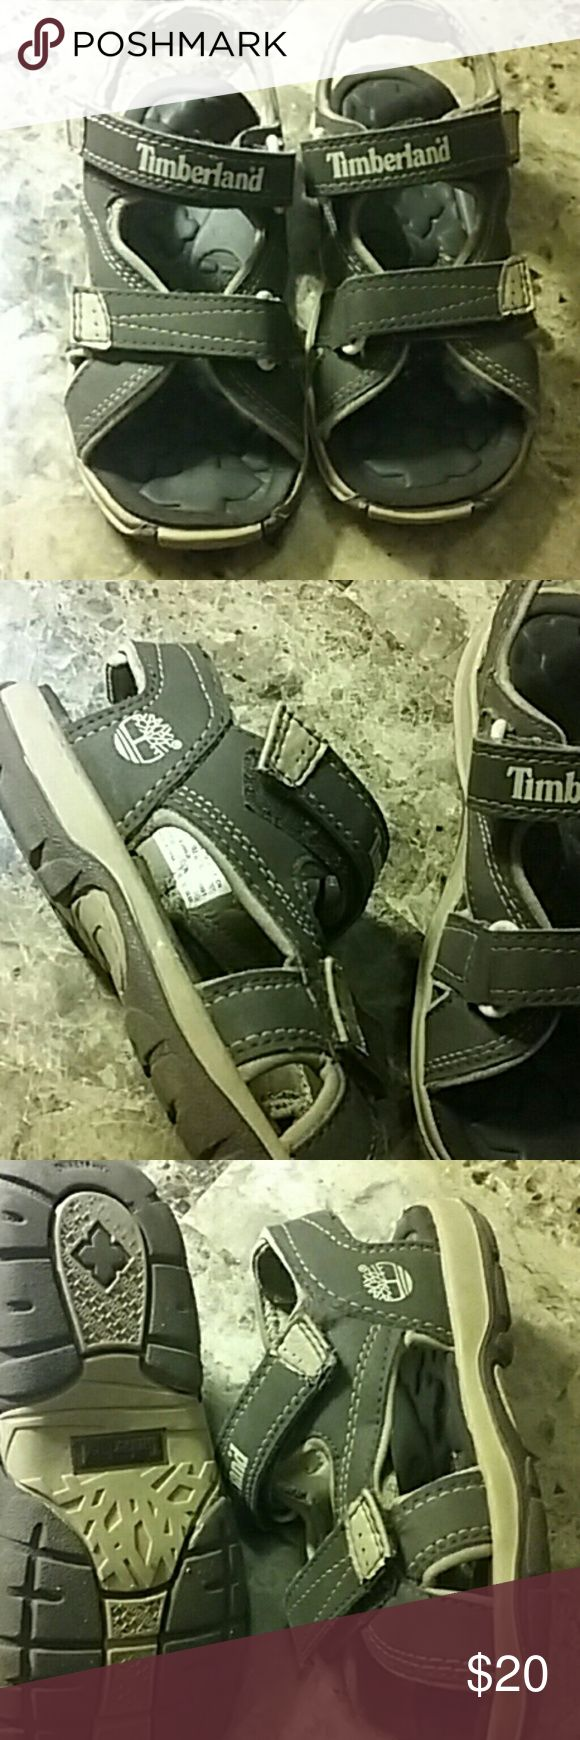 TIMBERLAND SANDALS TODDLER BOYS 11 C Like new, no flaws!! Timberland Shoes Sandals & Flip Flops